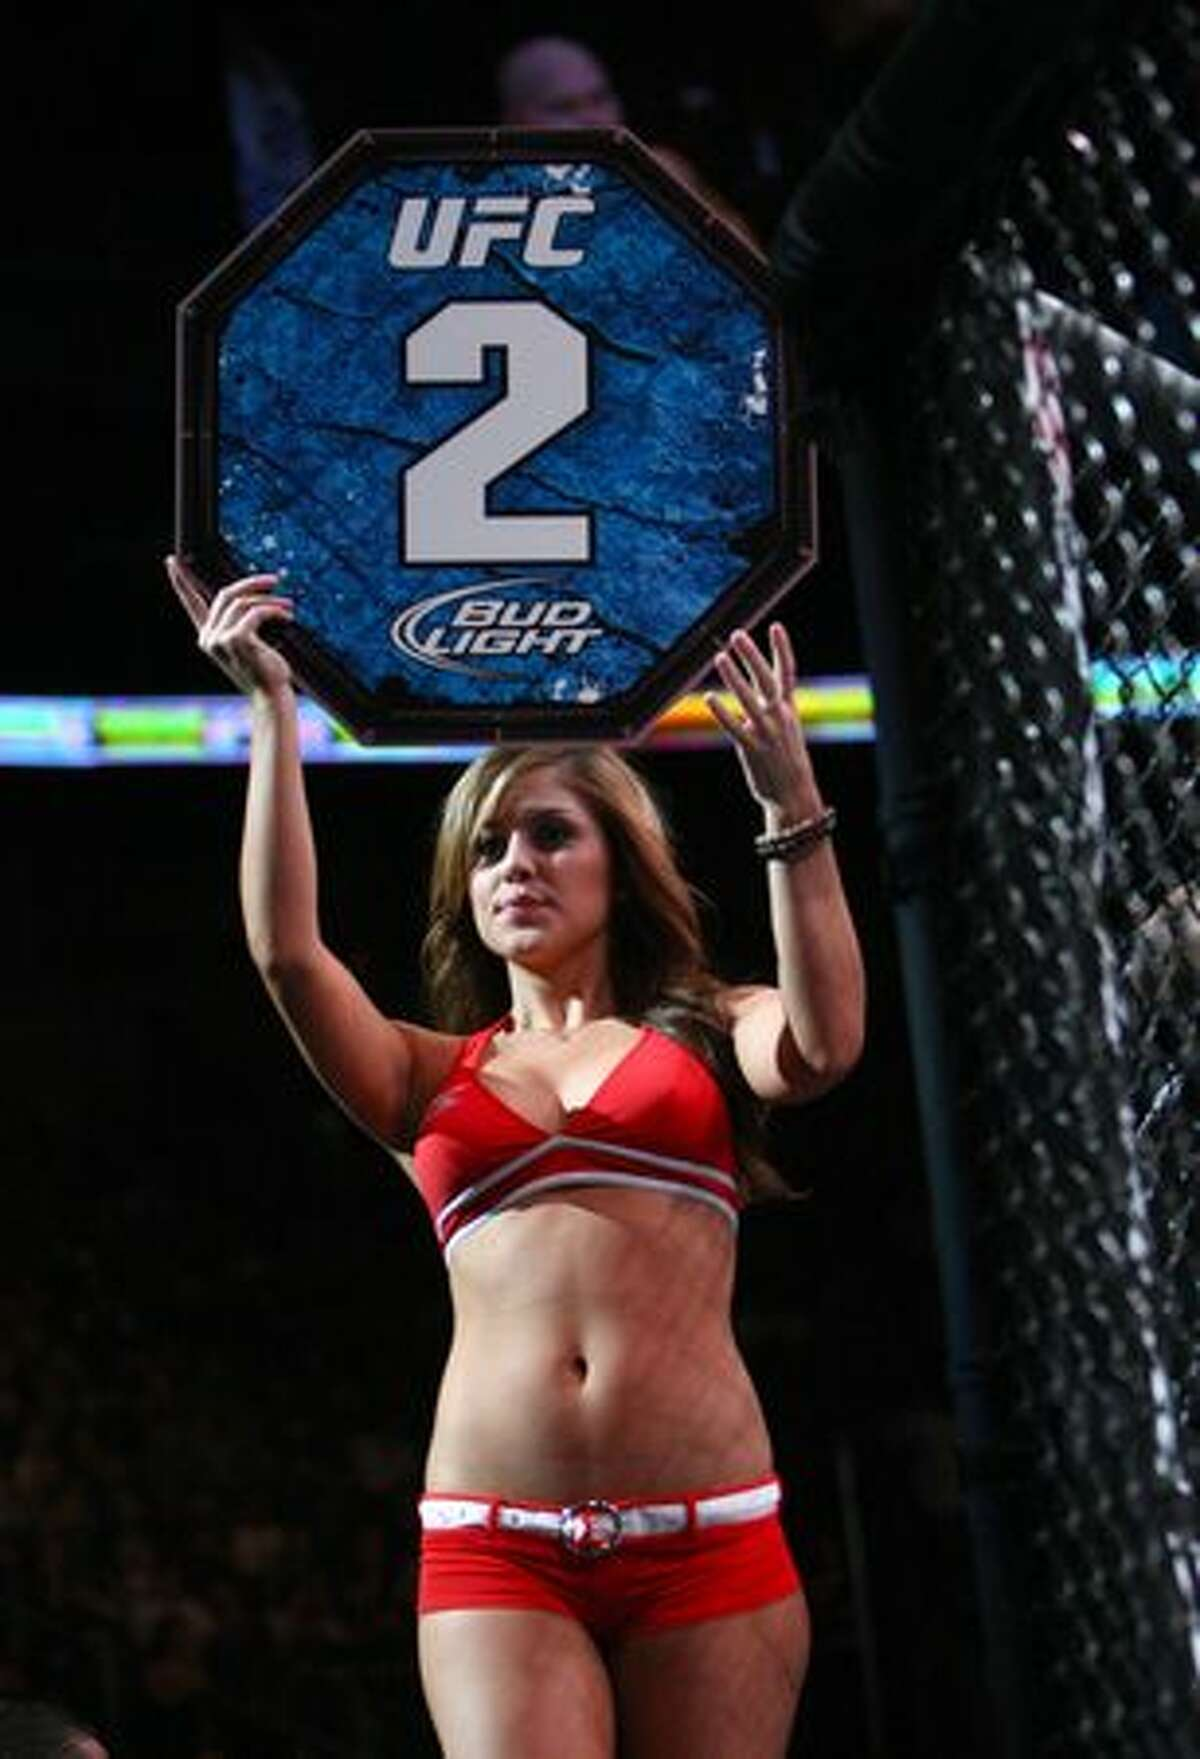 A ring girl walks around the octagon during UFC Fight Night Live.